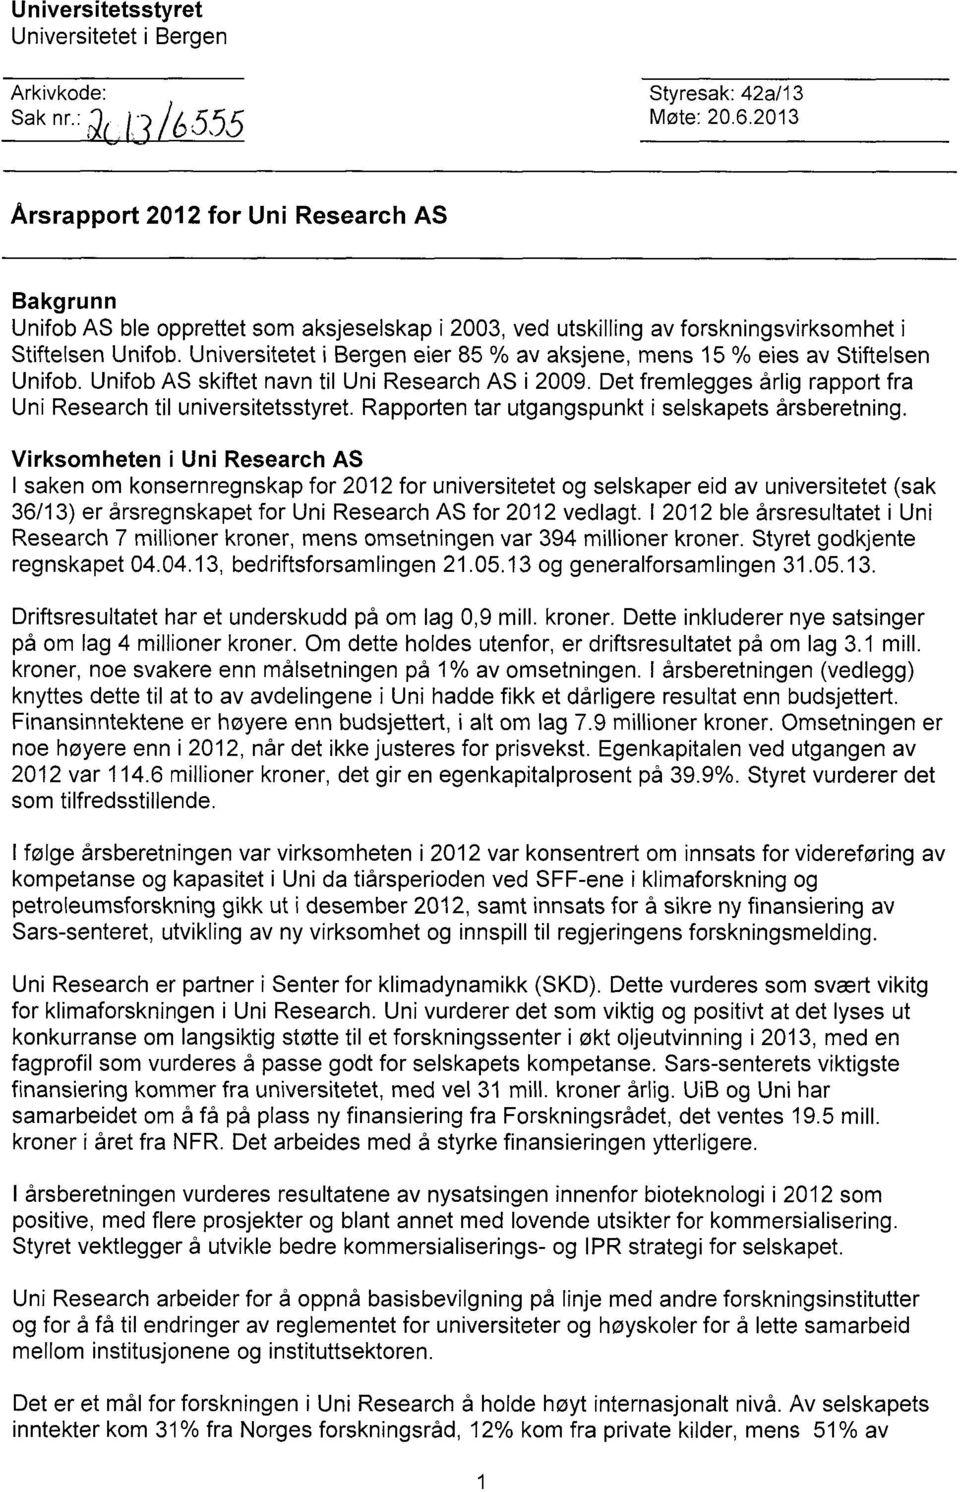 Universitetet i Bergen eier 85 % av aksjene, mens 15 % eies av Stiftelsen Unifob. Unifob AS skiftet navn til Uni Research AS i 2009.